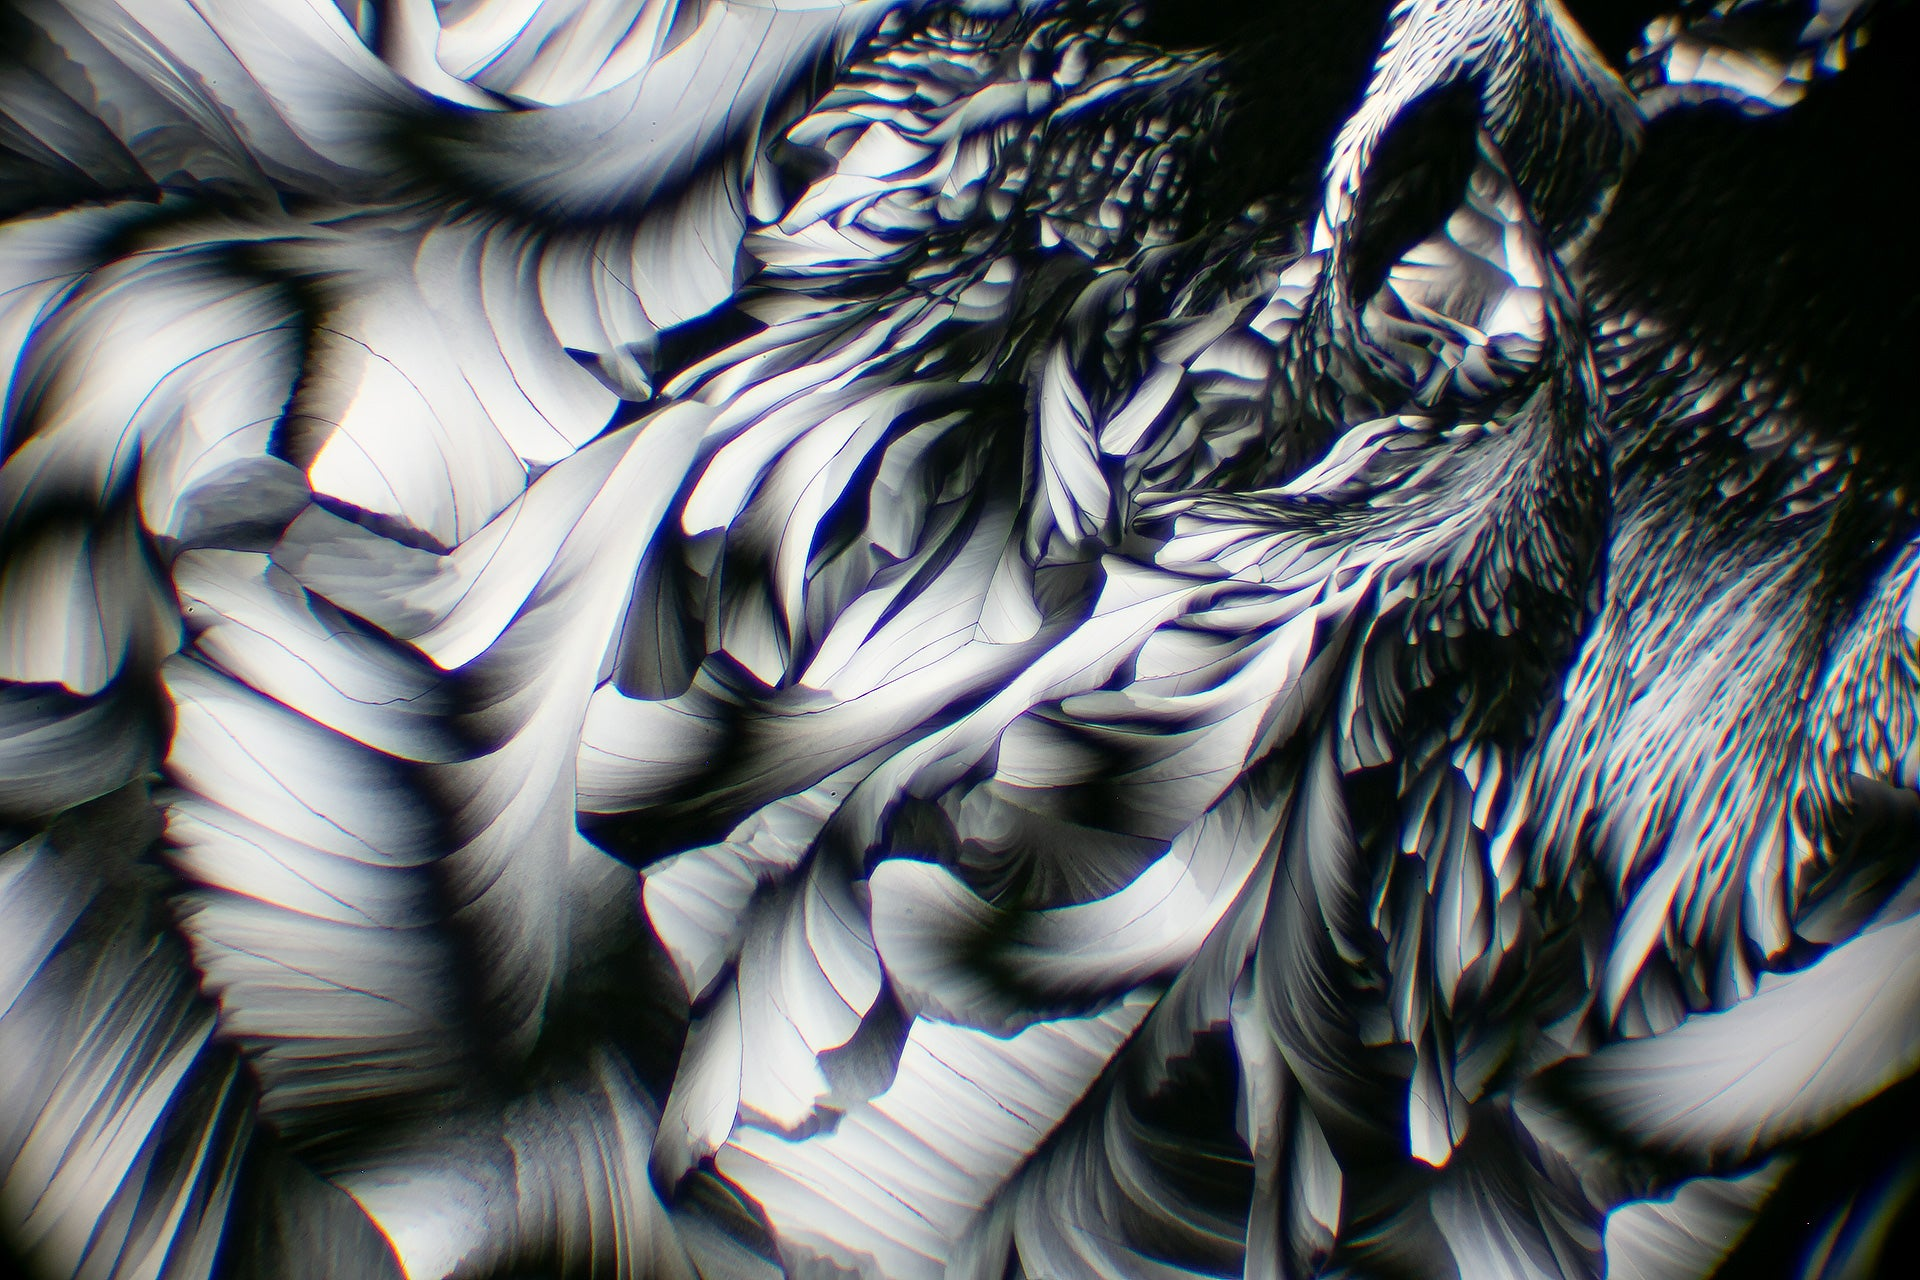 Crystals of Amino Acid Viewed in polarized light